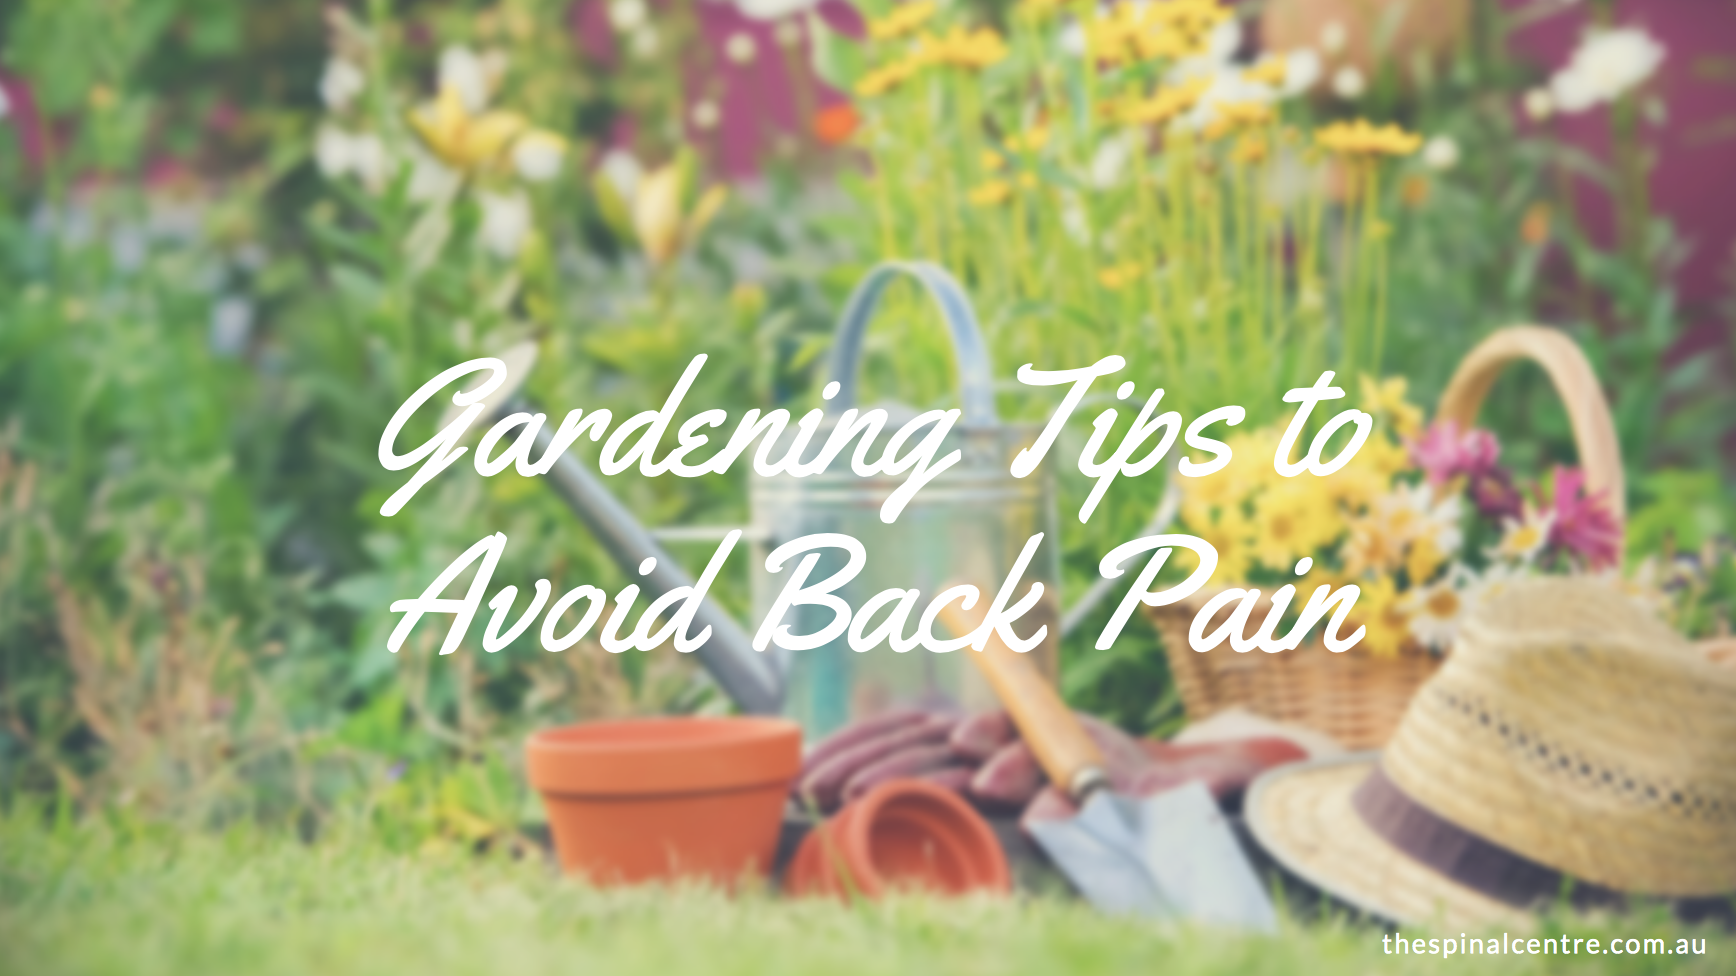 Chiropractic gardening tips for avoiding back pain the for Gardening 101 australia